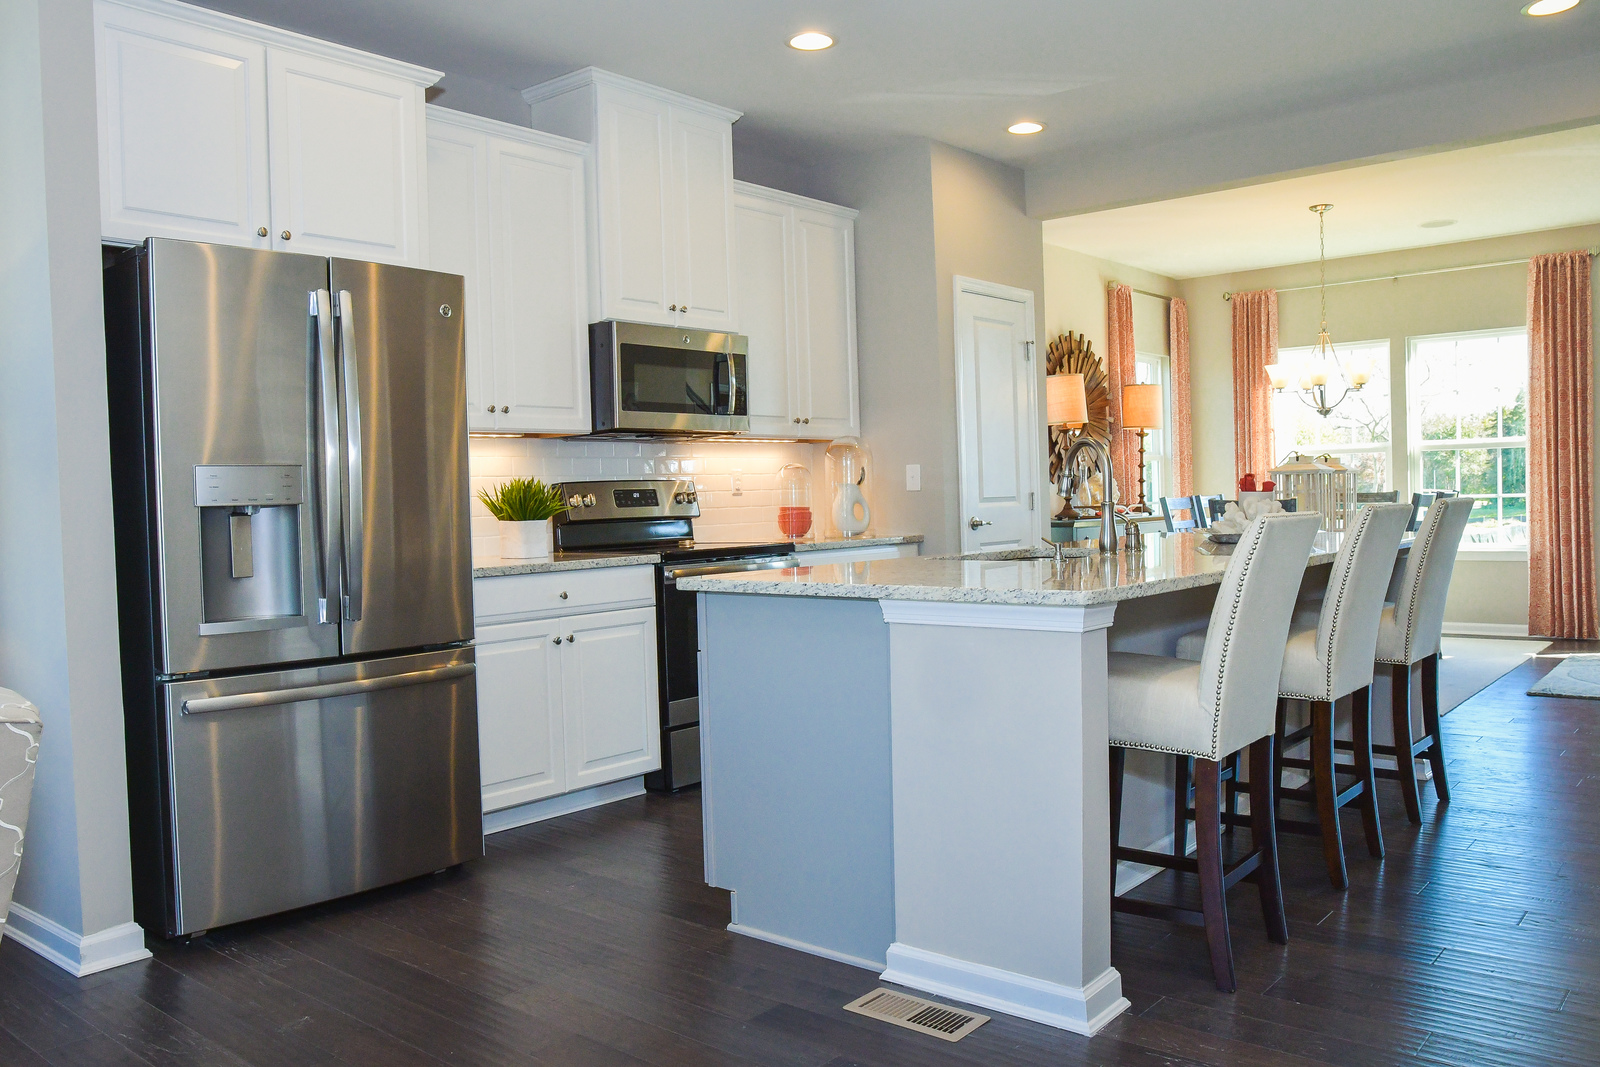 New Homes for sale at Quiet Waters in Essex, MD within the Baltimore ...